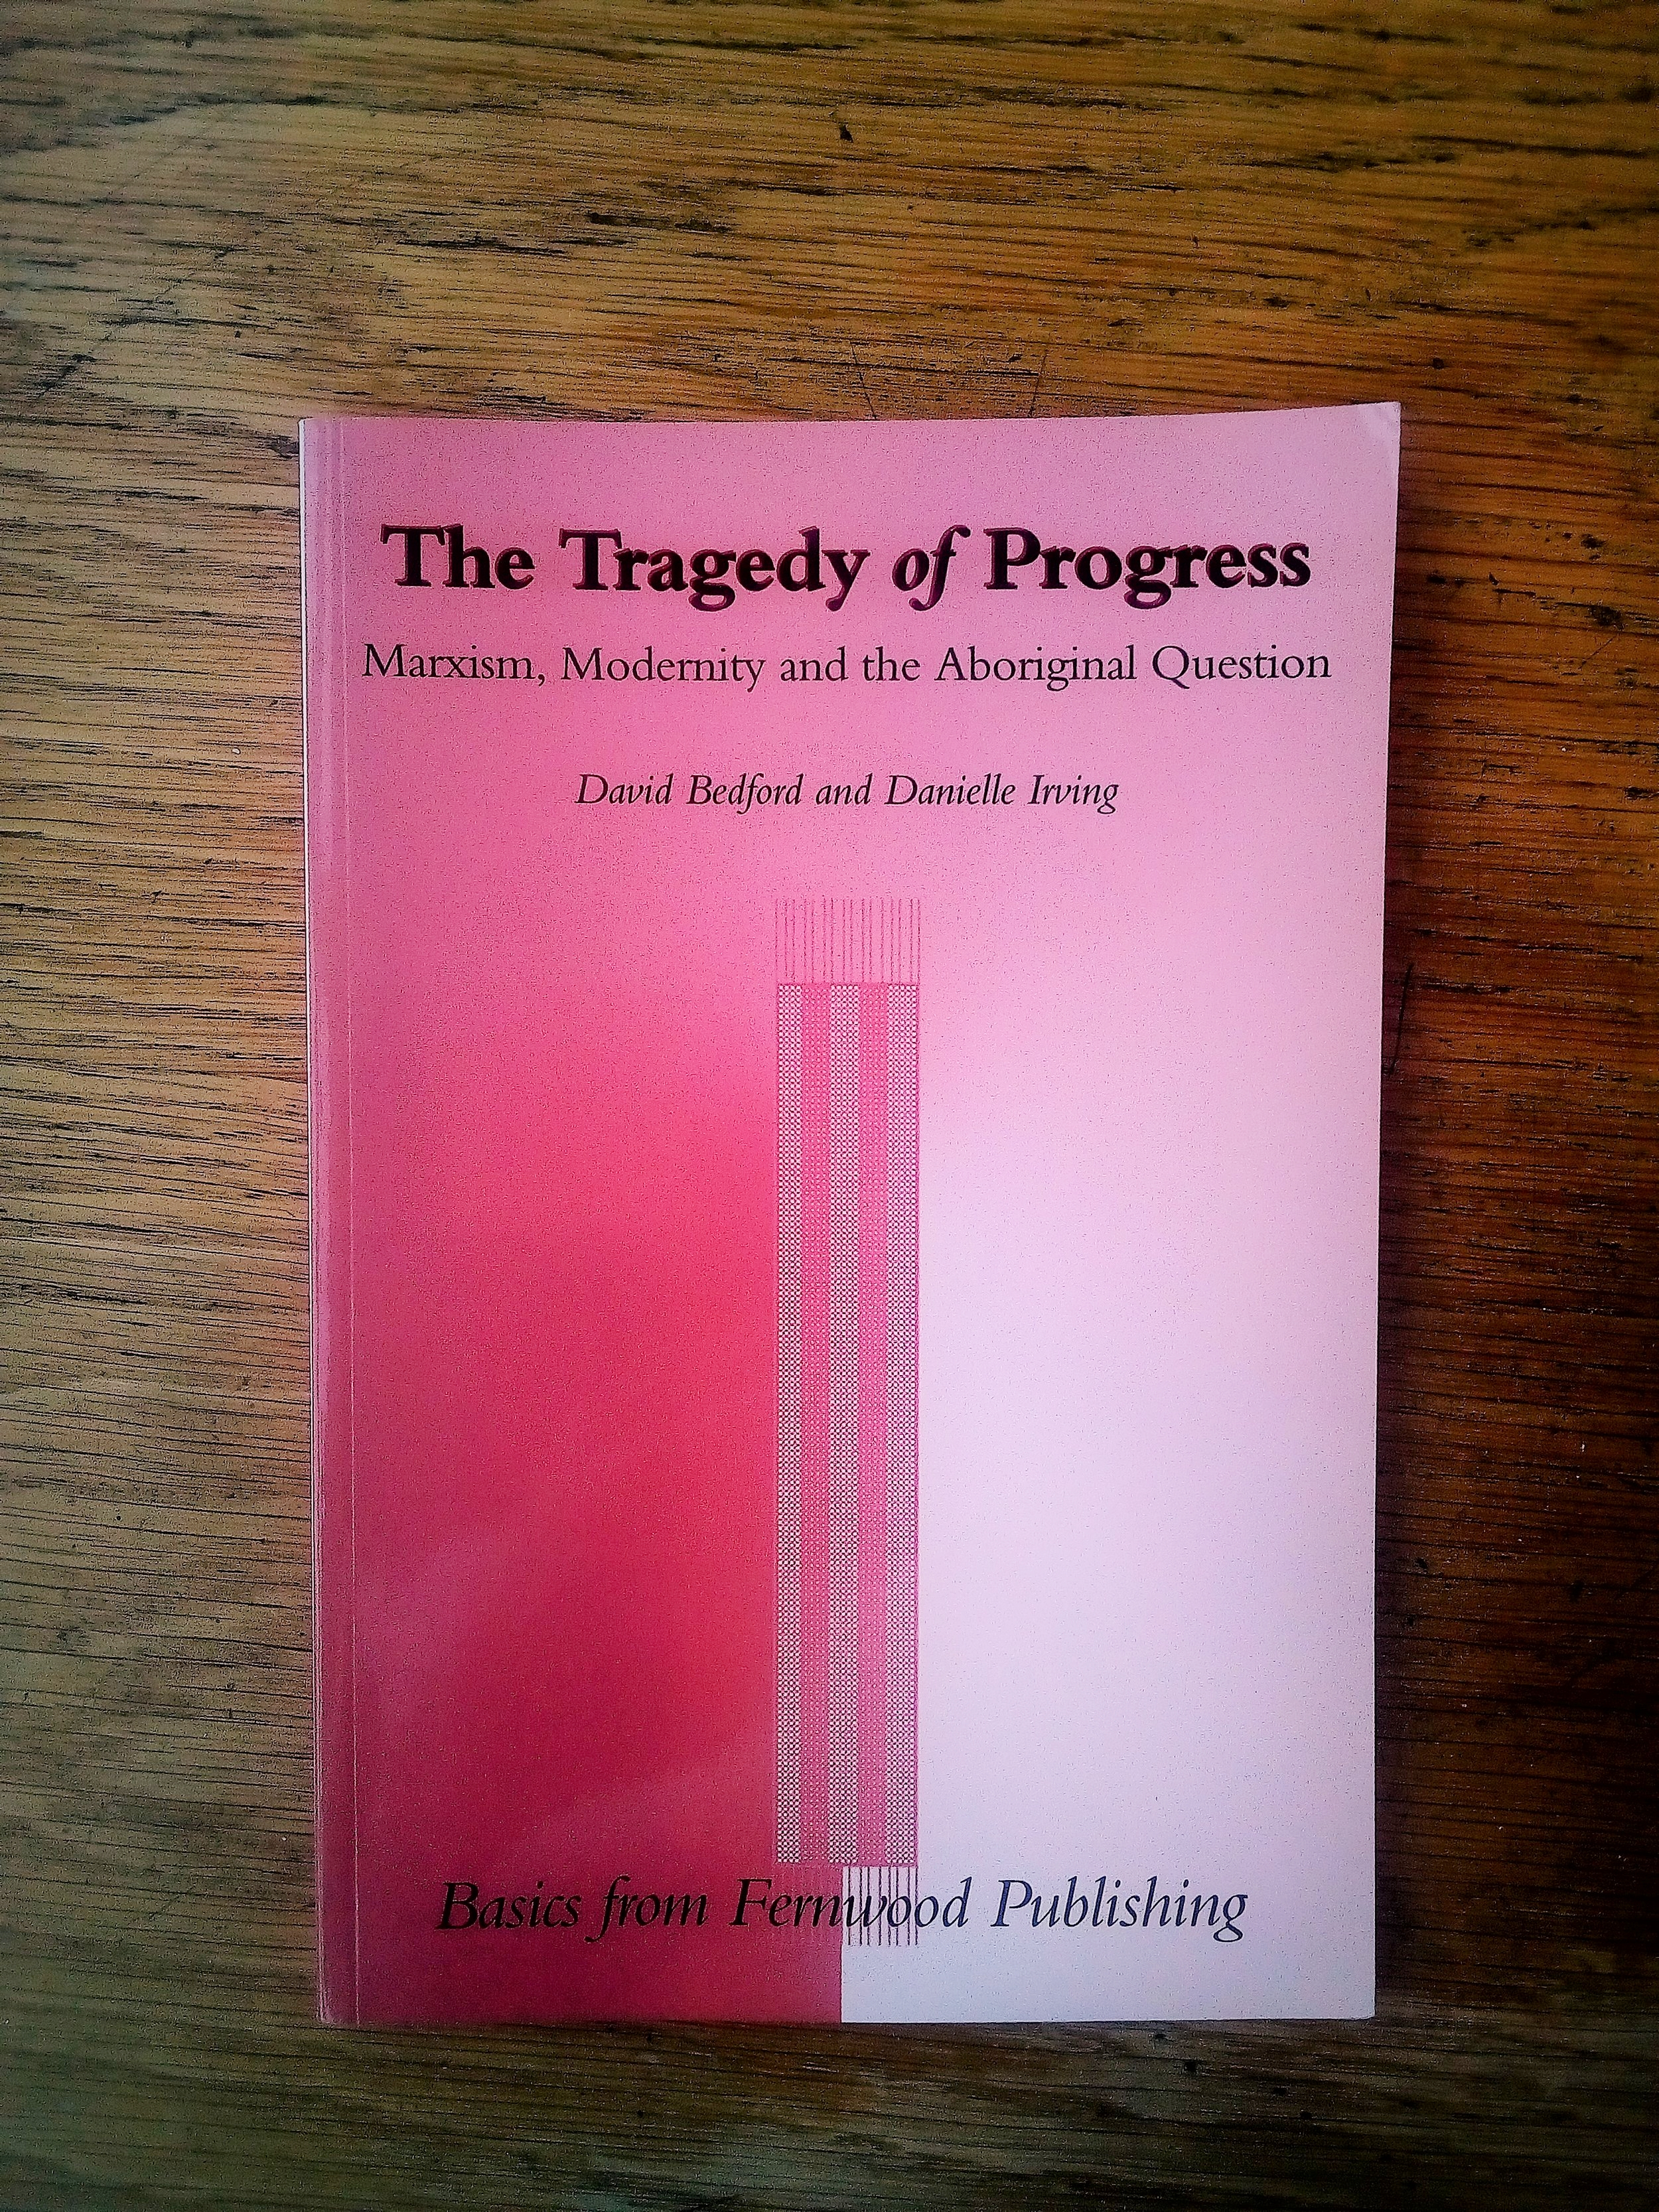 tragedy of progress book cover .jpg